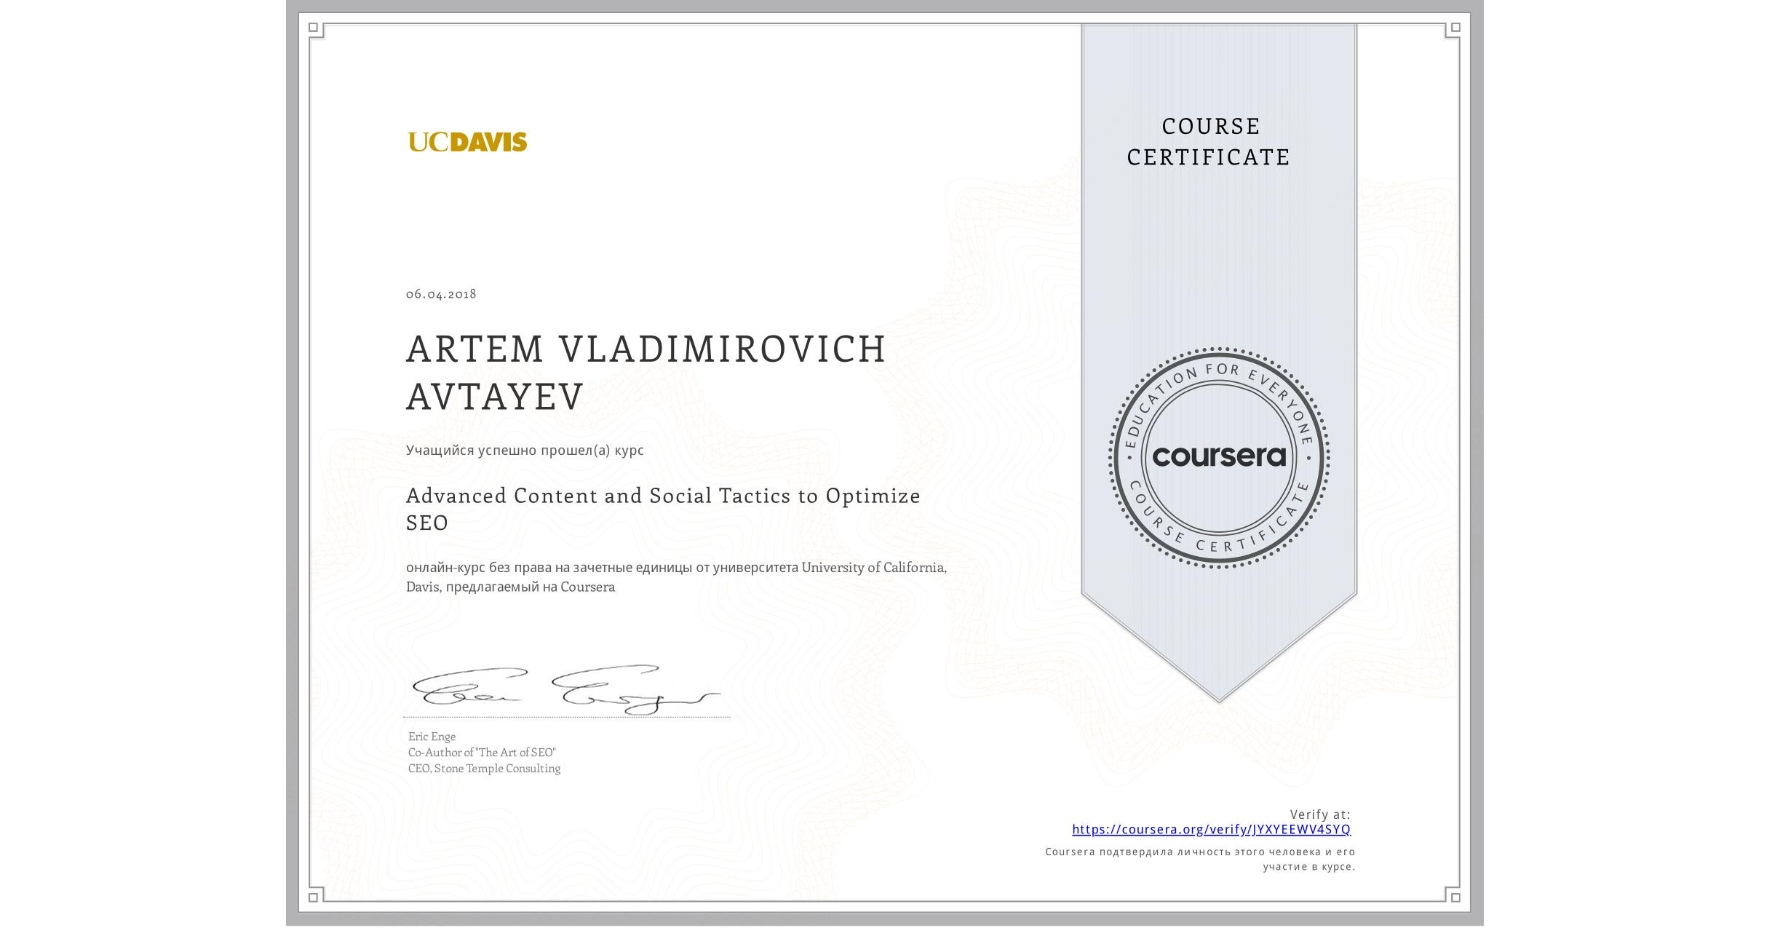 View certificate for ARTEM VLADIMIROVICH  AVTAYEV, Advanced Content and Social Tactics to Optimize SEO, an online non-credit course authorized by University of California, Davis and offered through Coursera